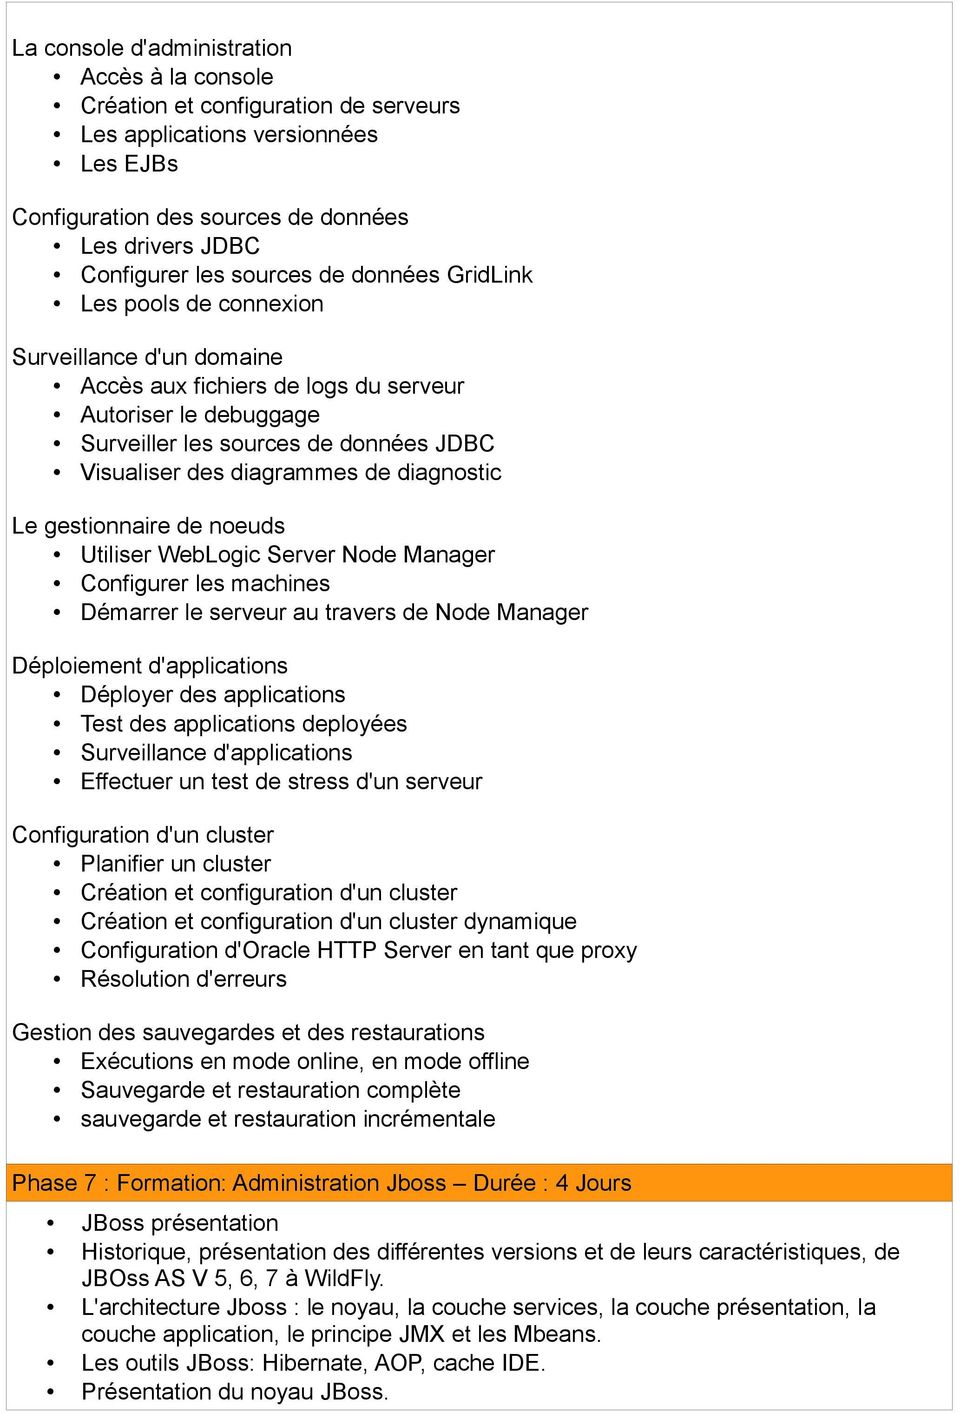 diagnostic Le gestionnaire de noeuds Utiliser WebLogic Server Node Manager Configurer les machines Démarrer le serveur au travers de Node Manager Déploiement d'applications Déployer des applications